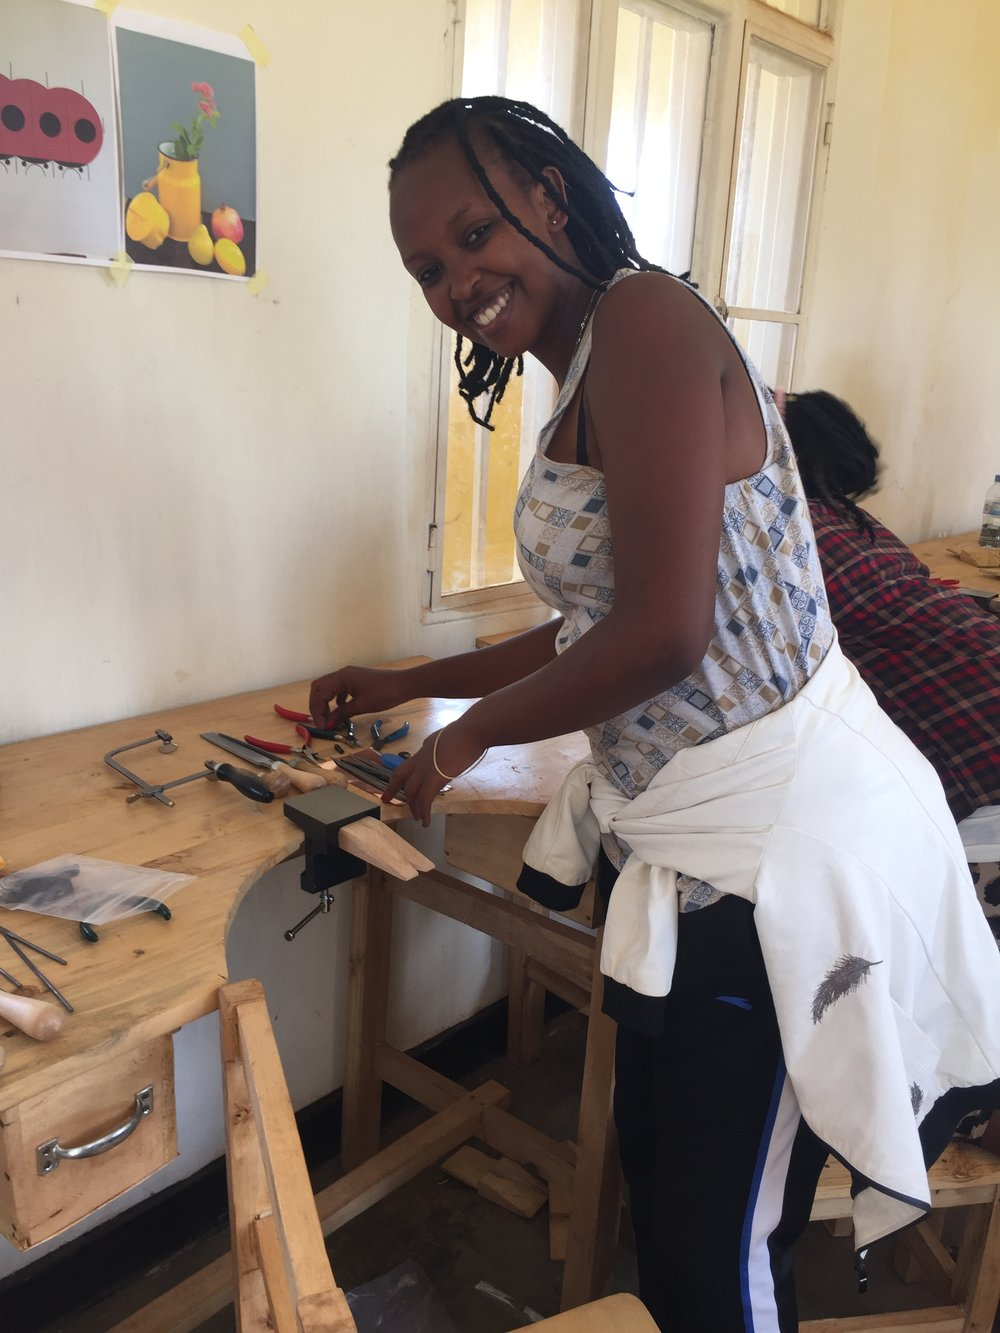 """Sandrah Uwasa Sandrah is a 22 year old metalsmith who graduated from Secondary School in Nyamata with a degree in Tourism. Sandrah is thrilled to be apart of Abari and express her true passions of jewelry, fashion and expressing creativity. Sandrah aspires to be an excellent jewelry artist, representing her country and her village. Sandrah says, """"I will always remember who helped me so when I have the ability it'll be my turn to help young girls in my community."""""""